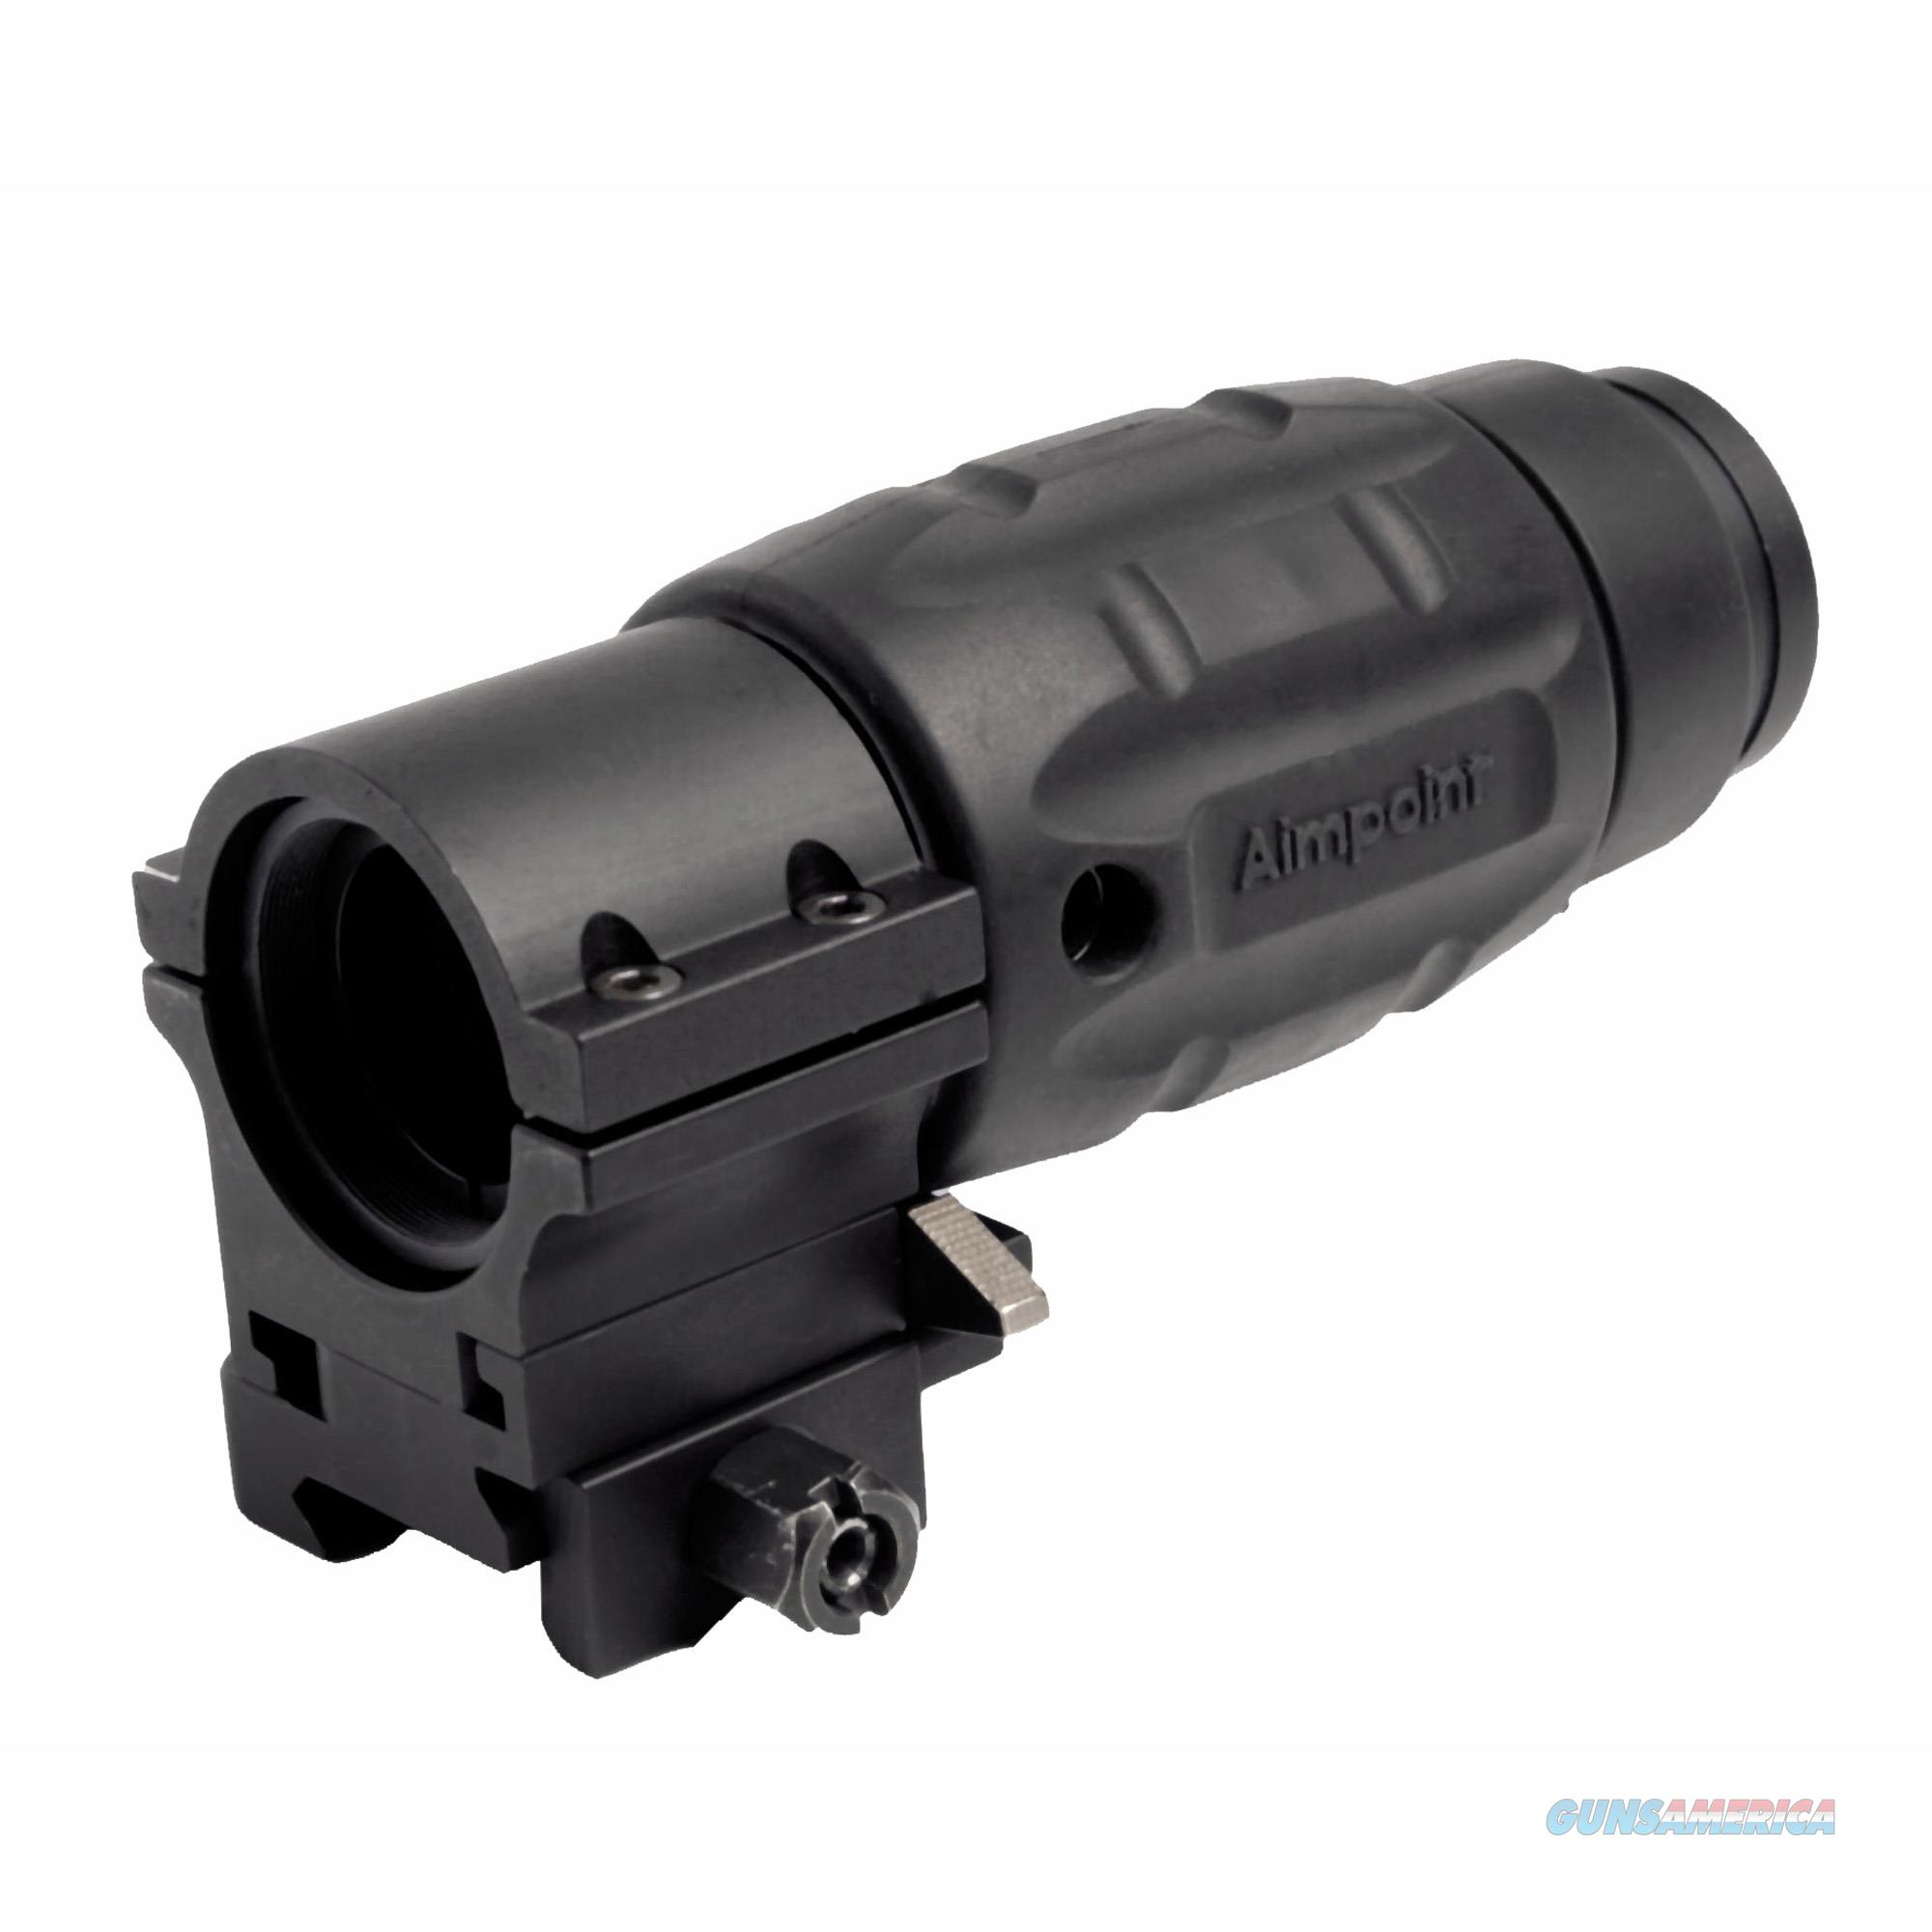 Aimpoint Magnifier 30Mm Tube With Twist Mount And Spacer Matte Black, 3X20mm 12071  Non-Guns > Iron/Metal/Peep Sights